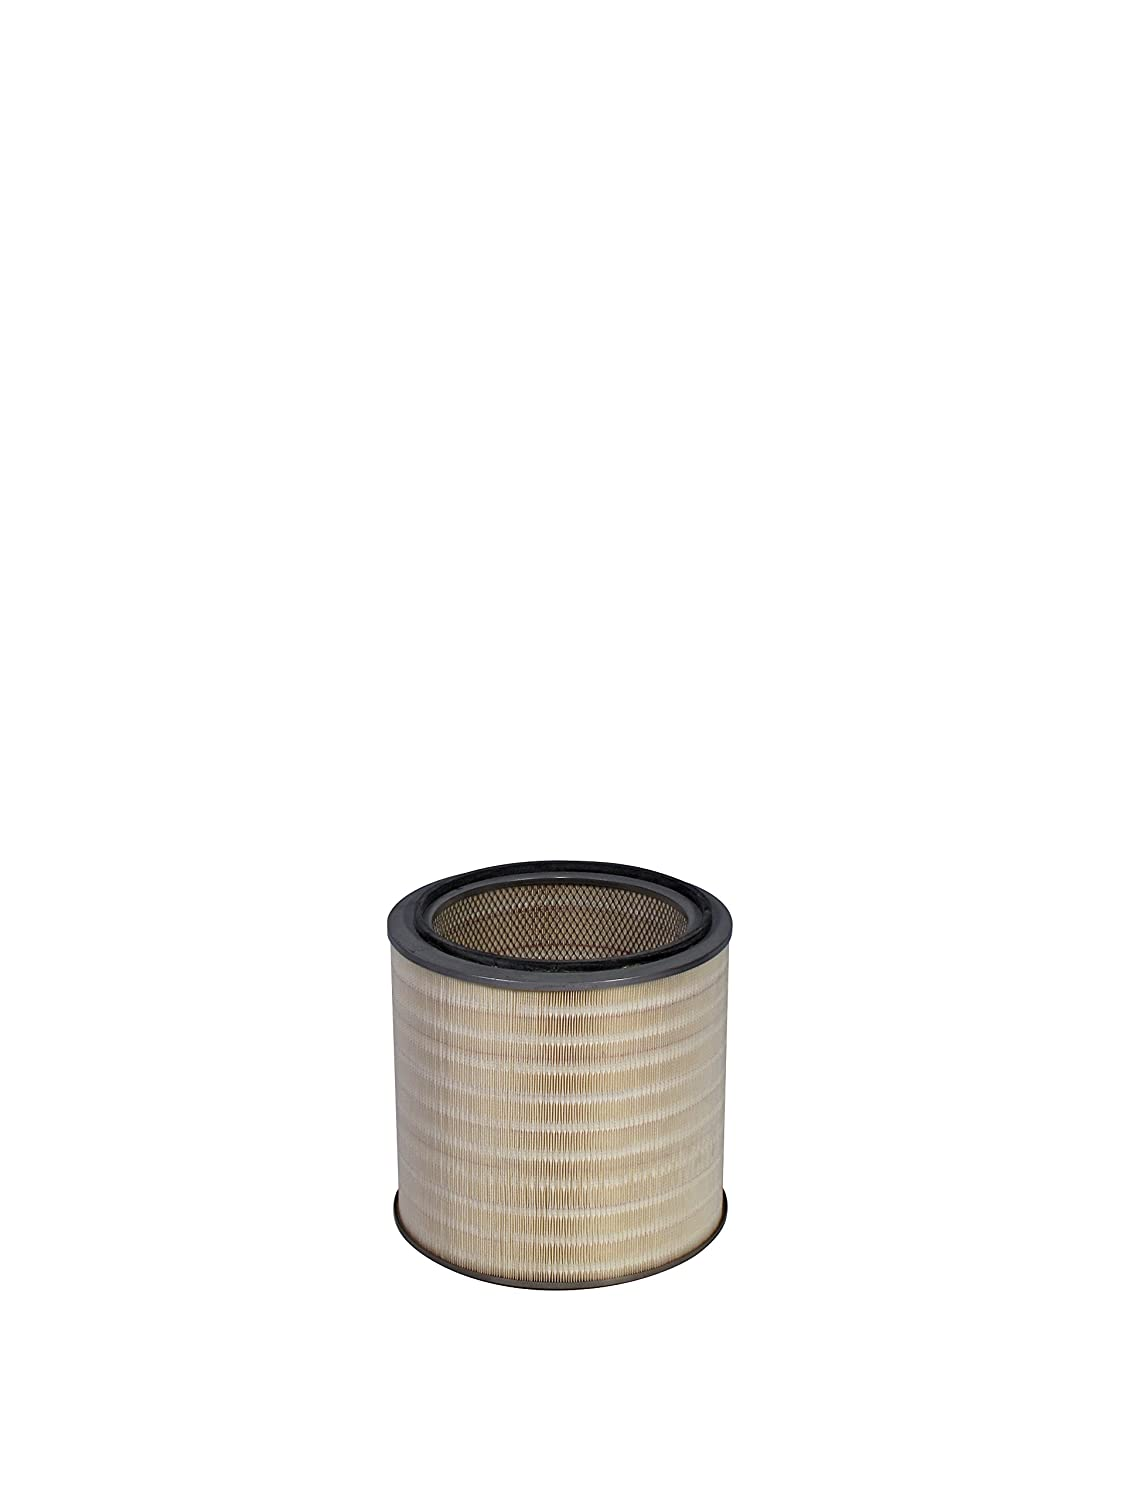 RoboVent - VB-18D16-13 - Filter Cartridge, WeldVent; For Use With Fume Extractors 45WD24, 45WD25, 5YAJ4, 5YAJ5